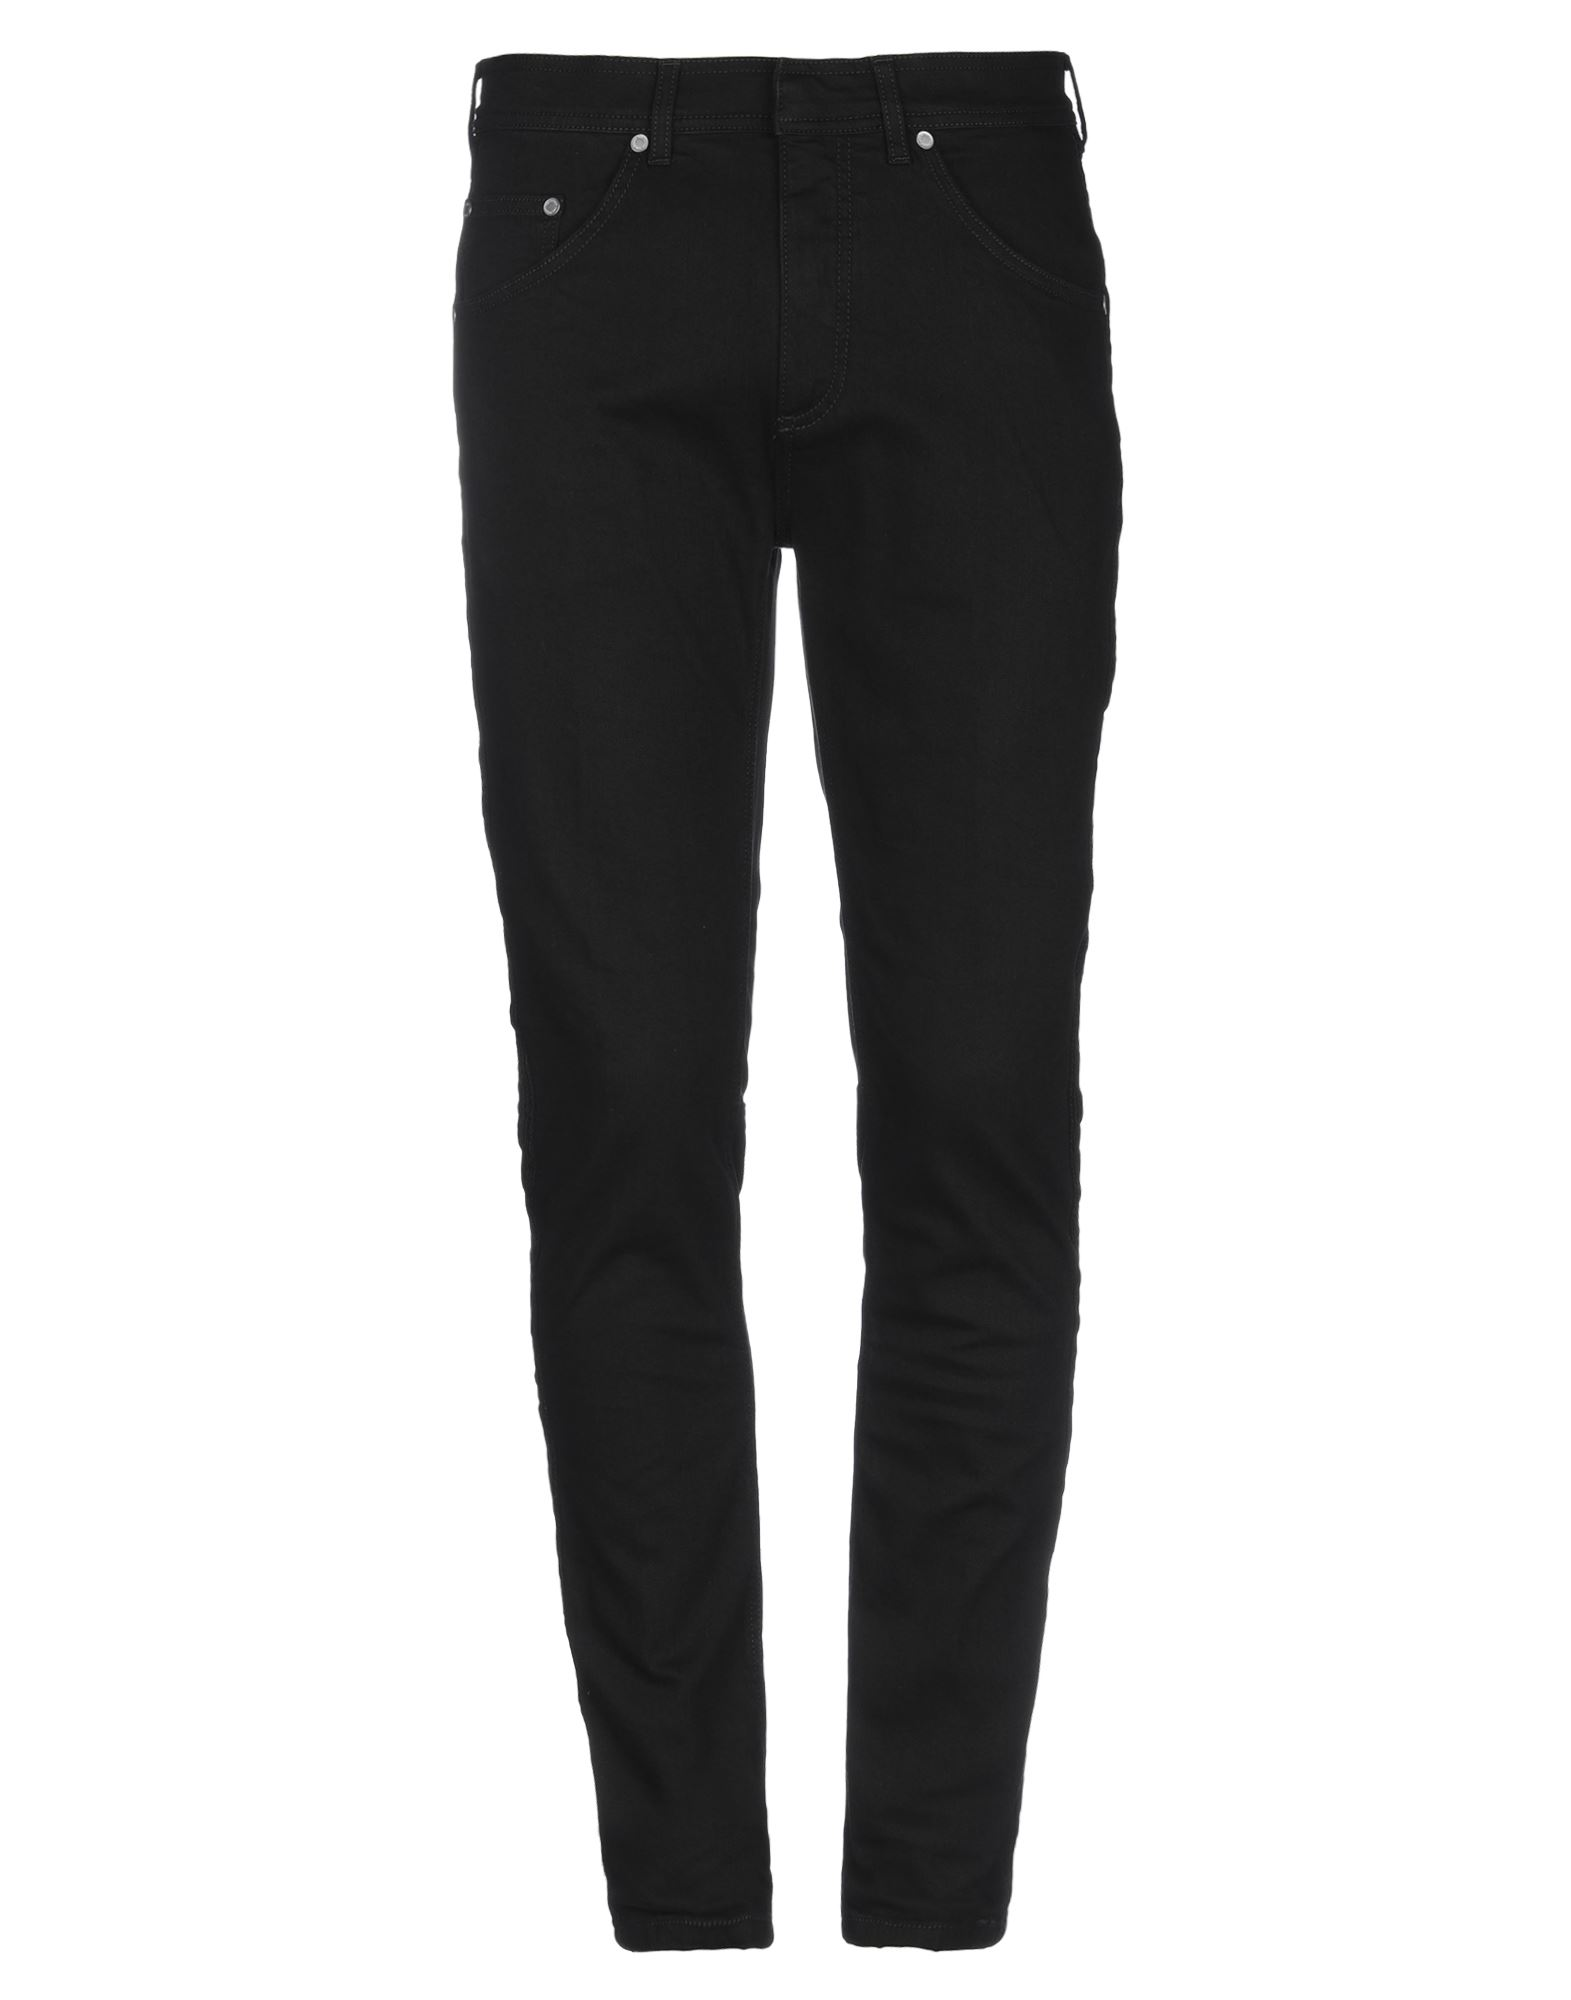 NEIL BARRETT Jeans. denim, logo, solid color, colored wash, mid rise, front closure, button, zip, multipockets, stretch, large sized. 98% Cotton, 2% Elastane